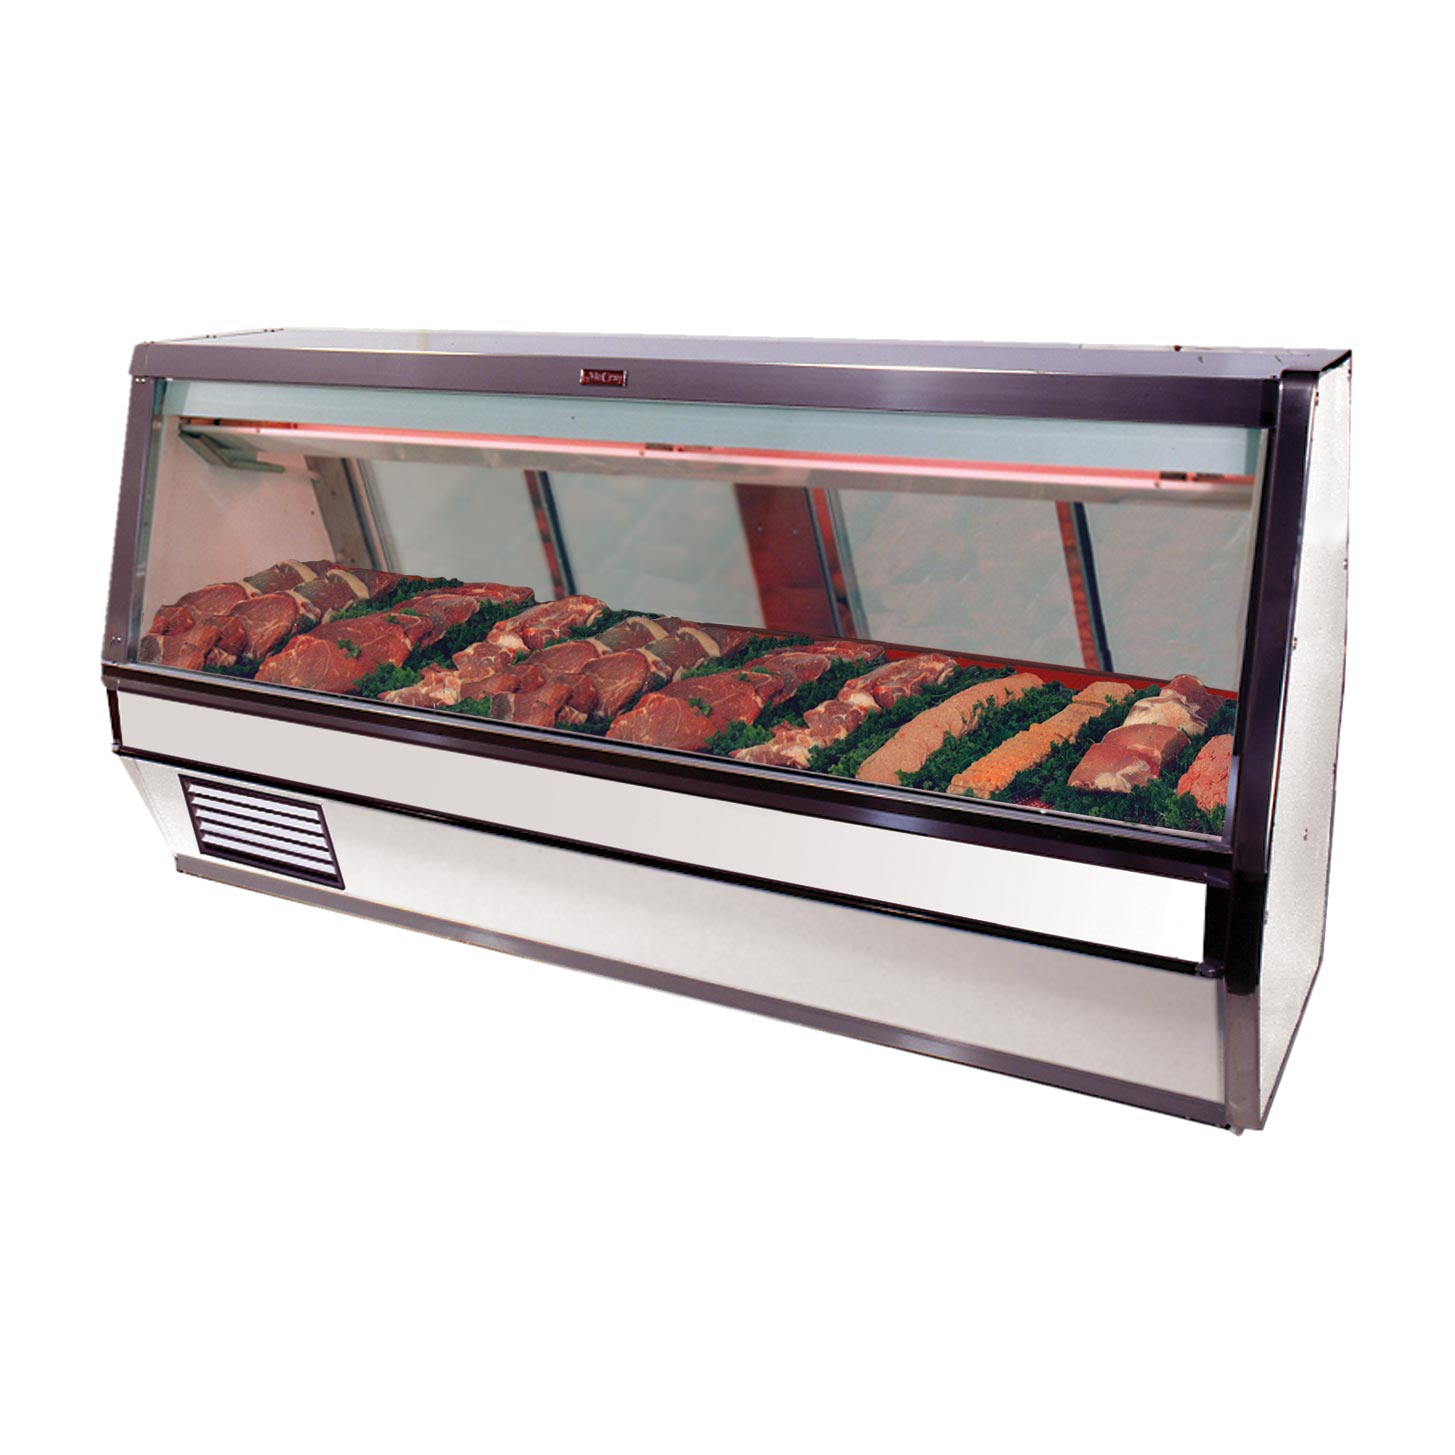 Howard-McCray SC-CMS40E-4-LED display case, red meat deli